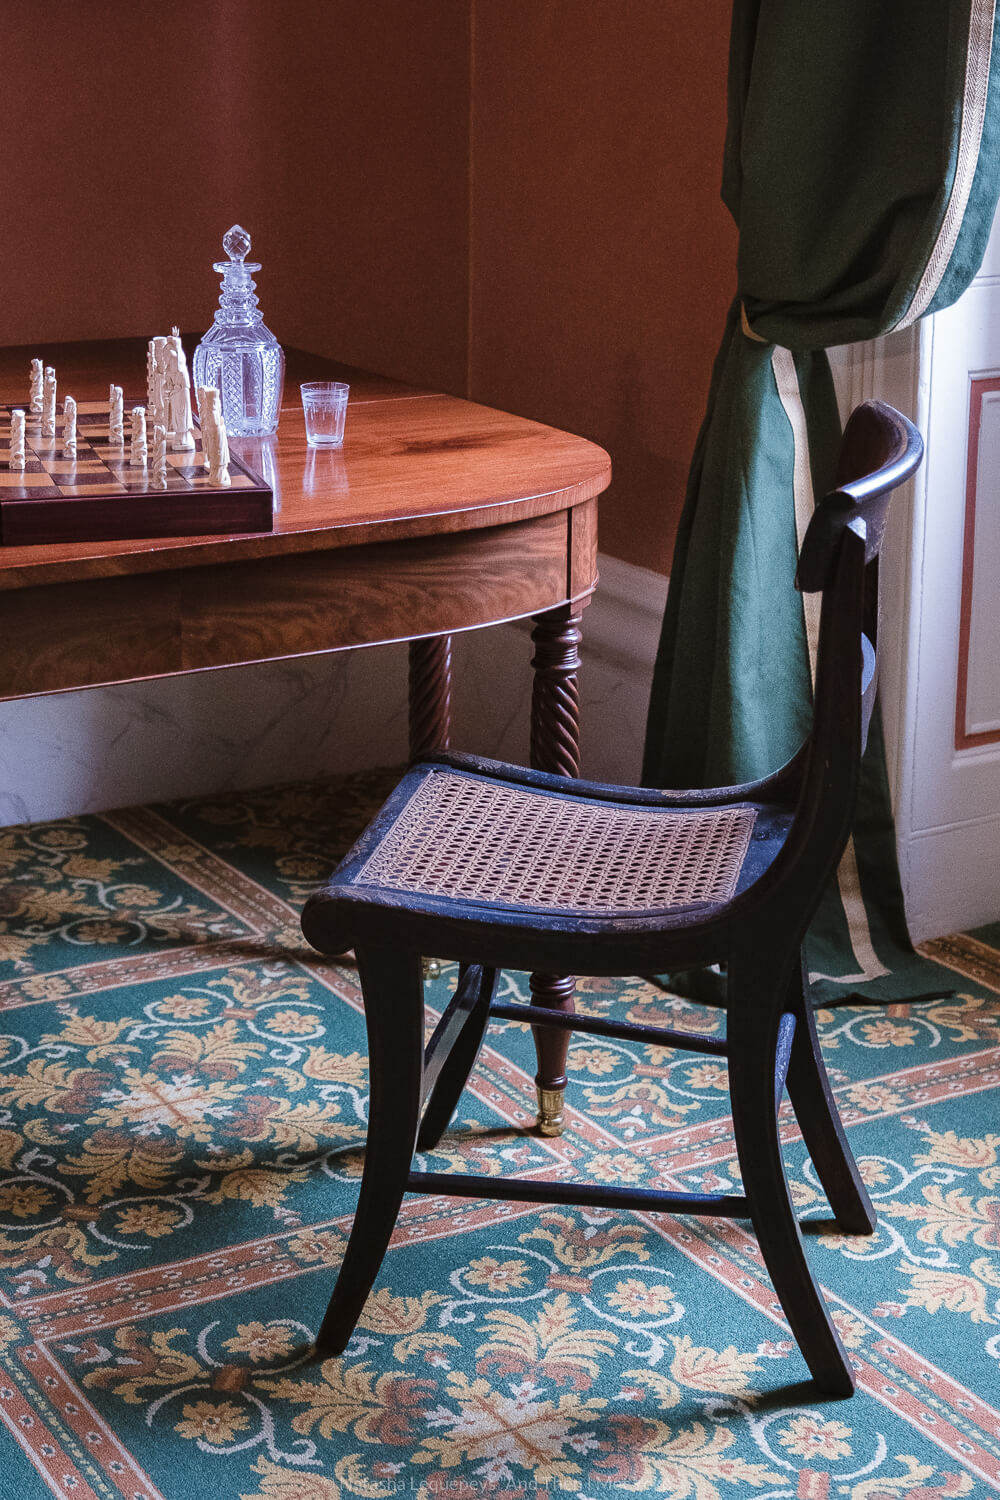 """Tour inside the Thomas-Owens house. Travel photography and guide by © Natasha Lequepeys for """"And Then I Met Yoko"""". #savannah #usa #travelphotography #travelguide #travelblog"""